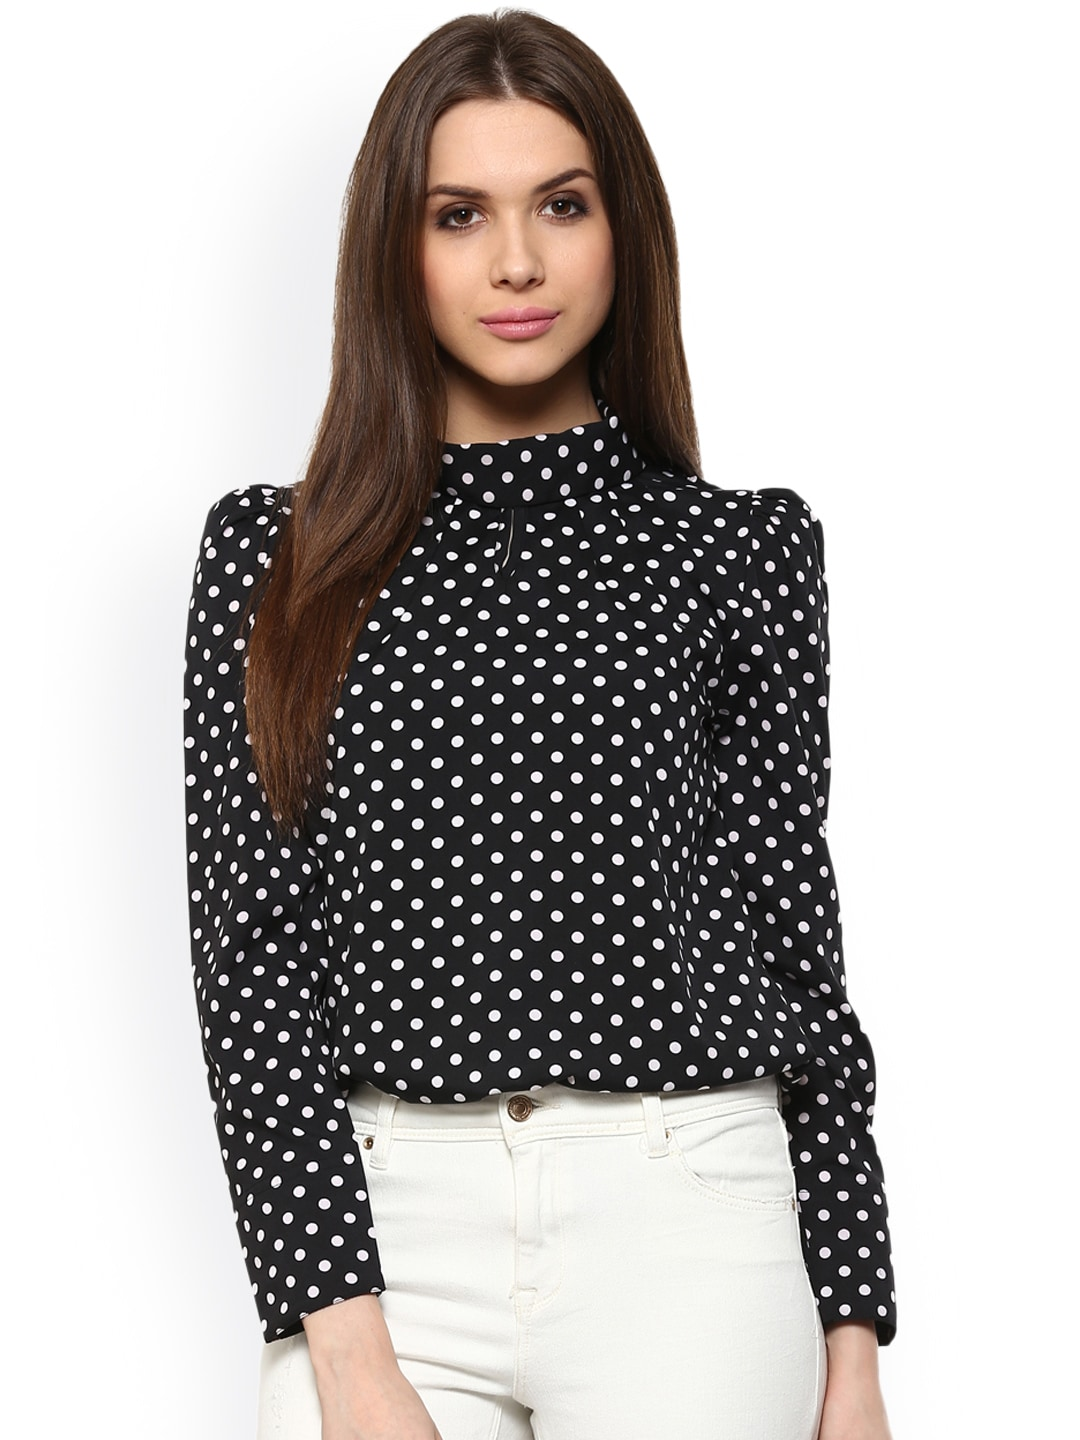 Women Polka Dot Tops - Buy Women Polka Dot Tops online in India 88a50404f